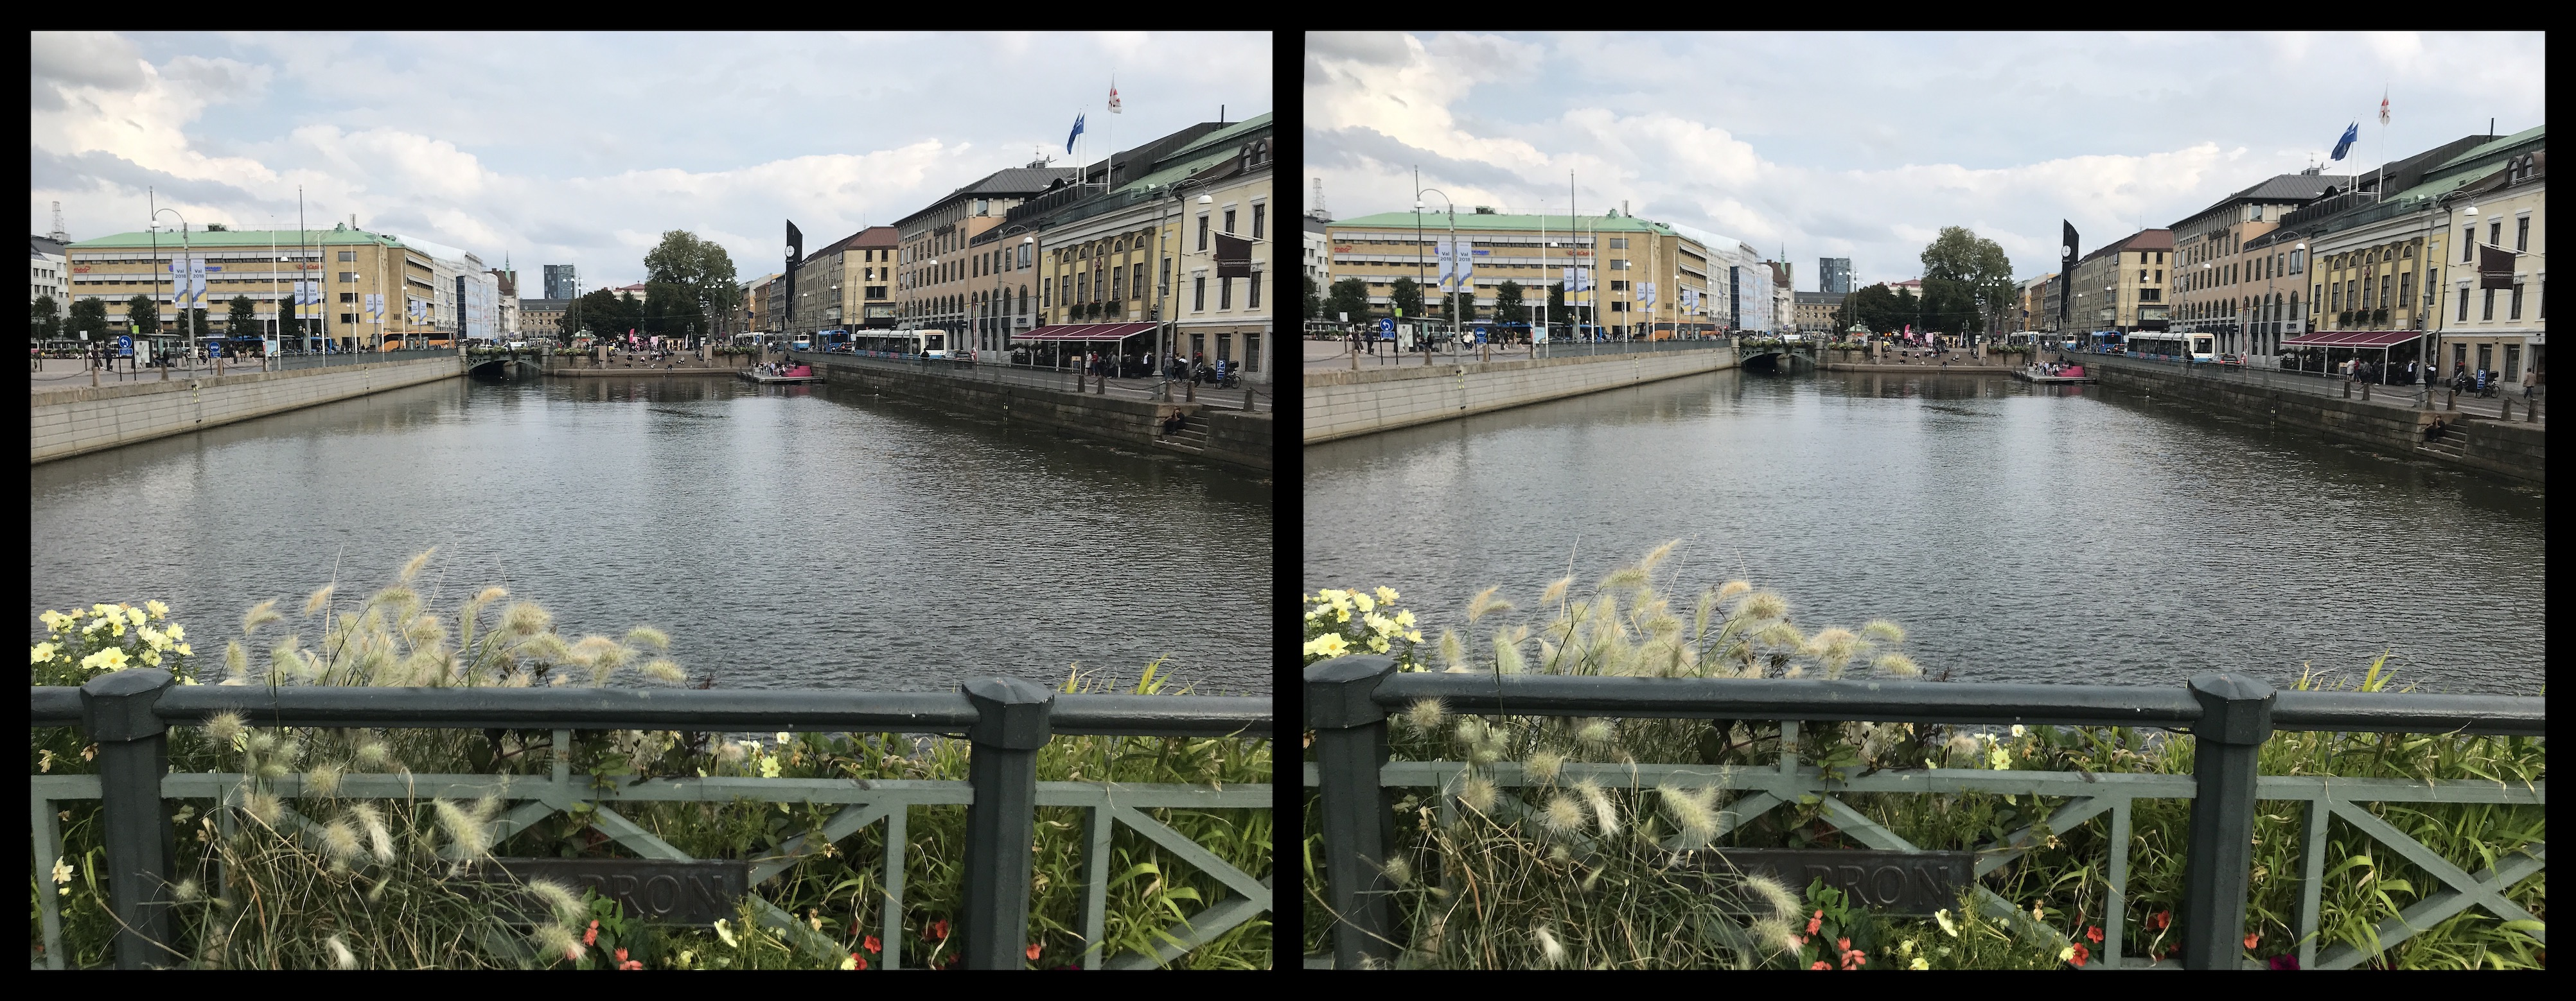 View from Fountain Bridge in Central Gothenburg (4.9% deviation)